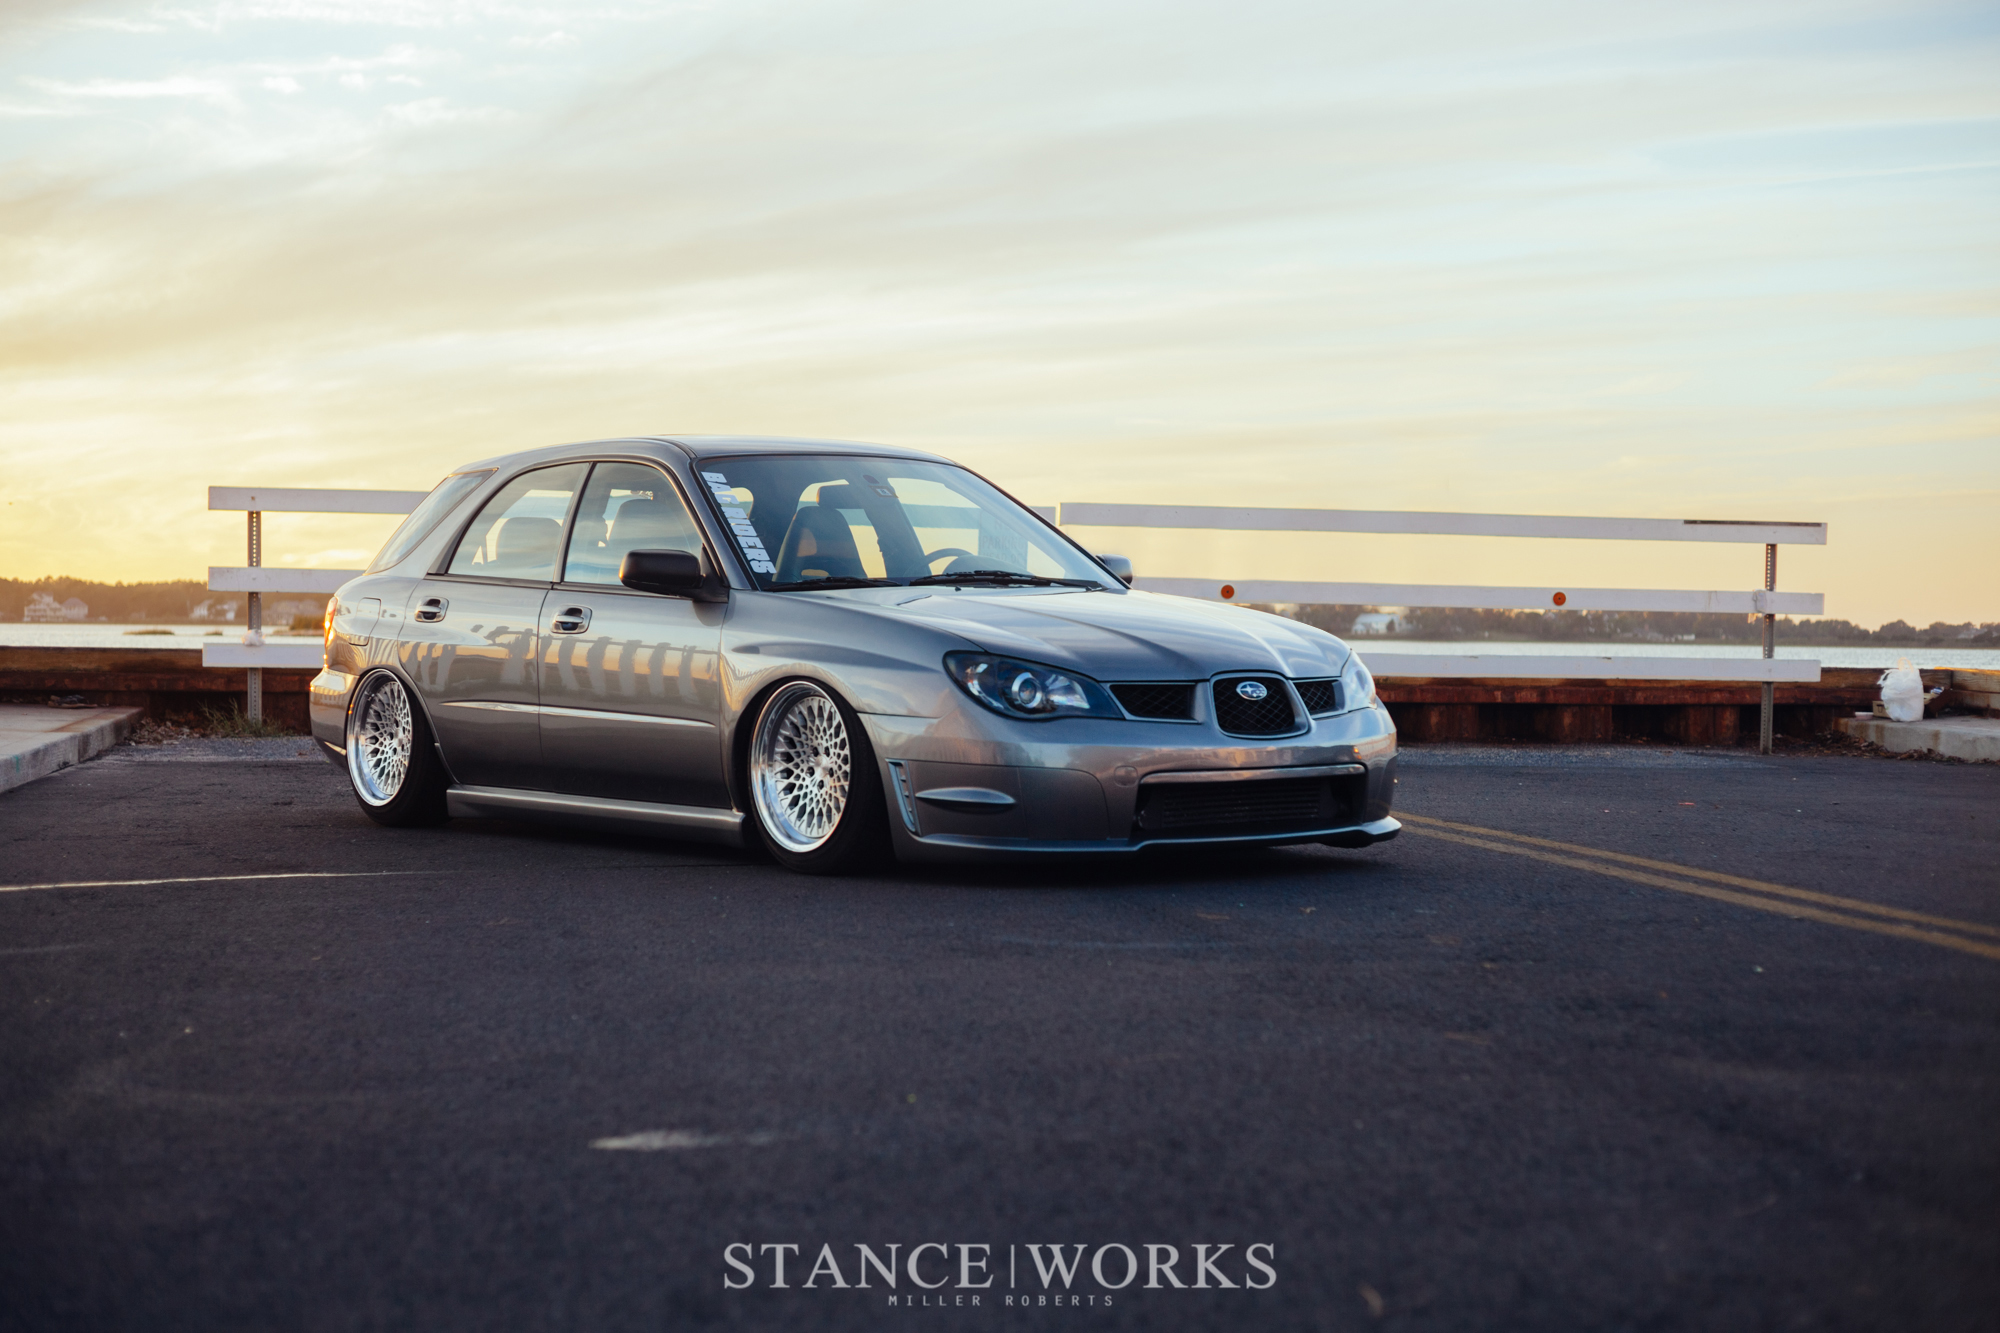 100 ideas 06 wrx wagon on stylecars going wider john halls widebody 2006 wrx wagon stanceworks vanachro Image collections